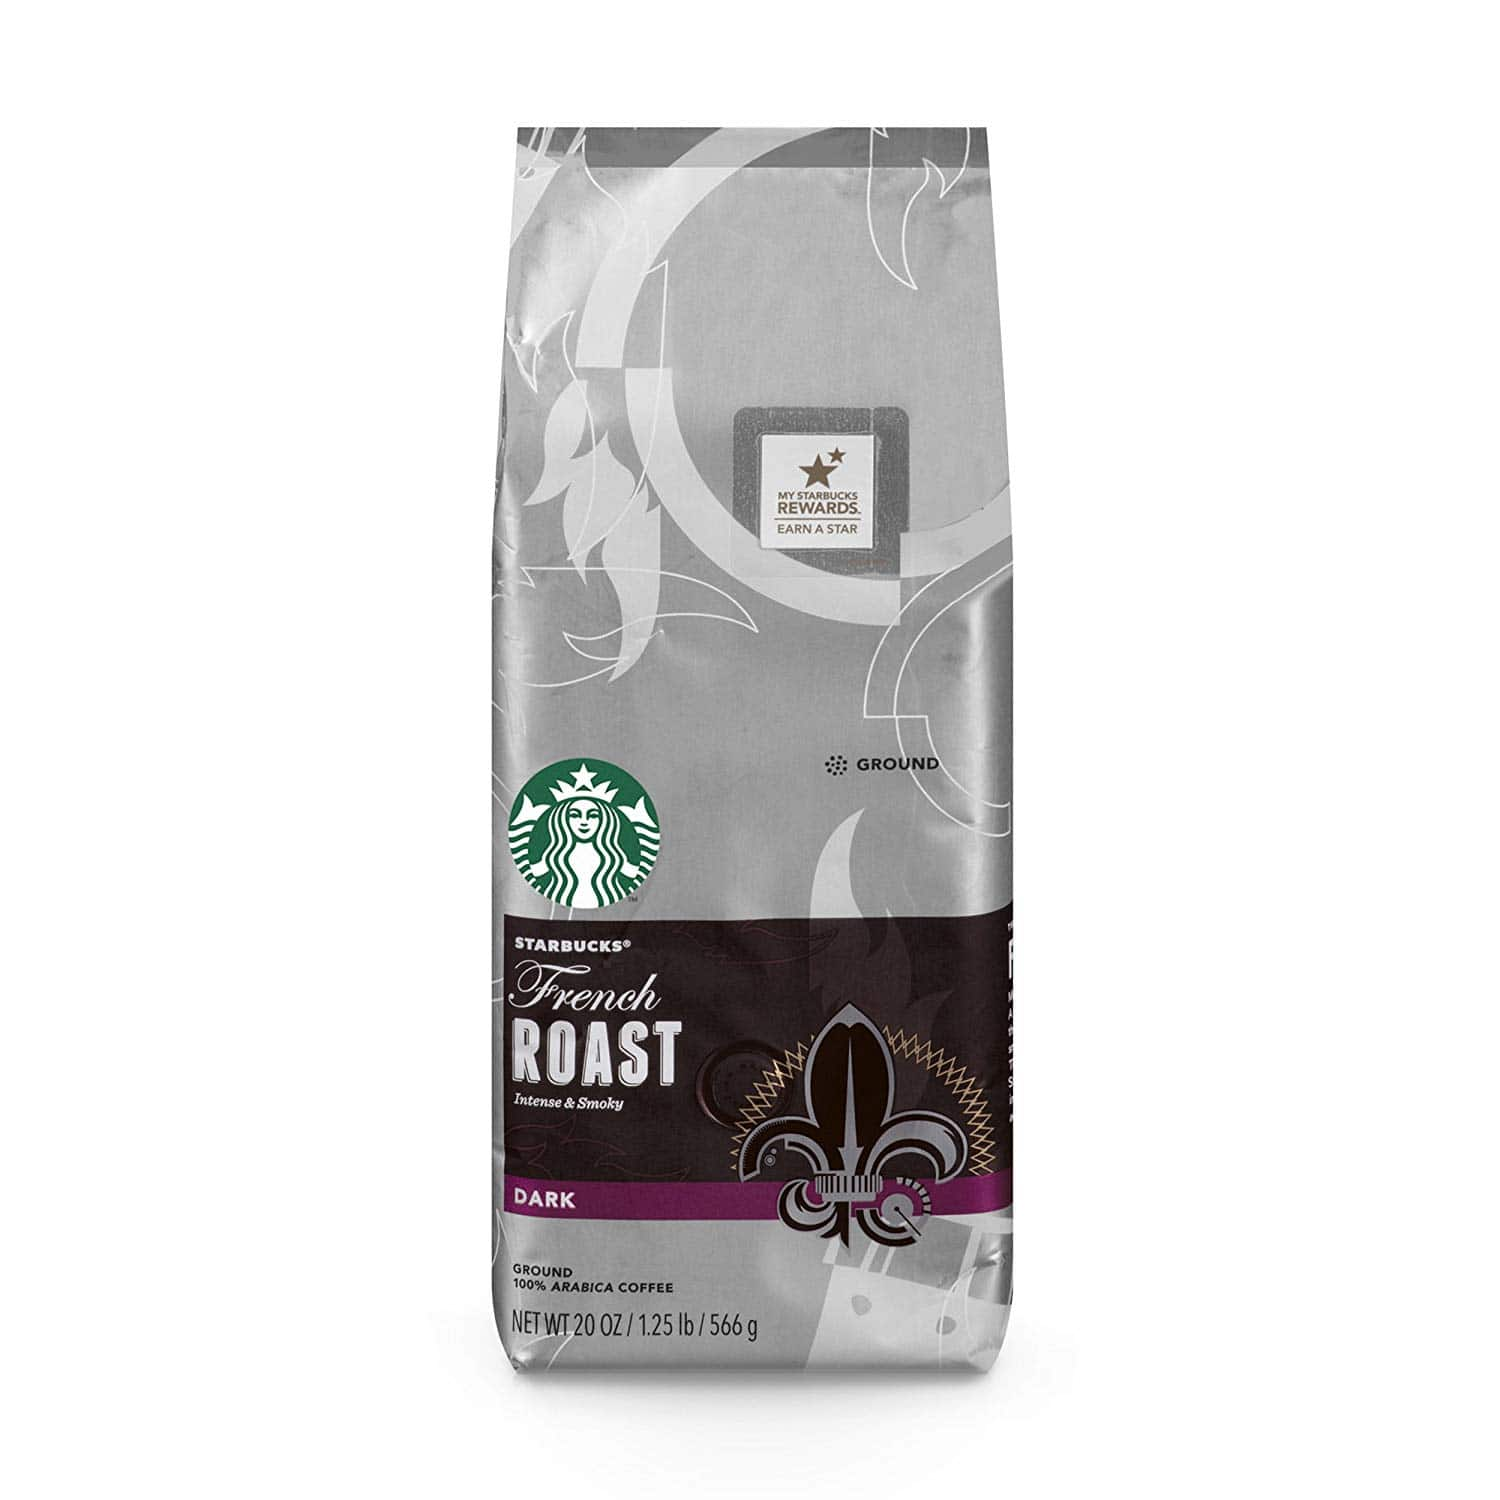 20-oz Starbucks French Roast Dark Roast Ground Coffee $7.59 w/ 5% S&S or $6.79 w/ 15% S&S at Amazon